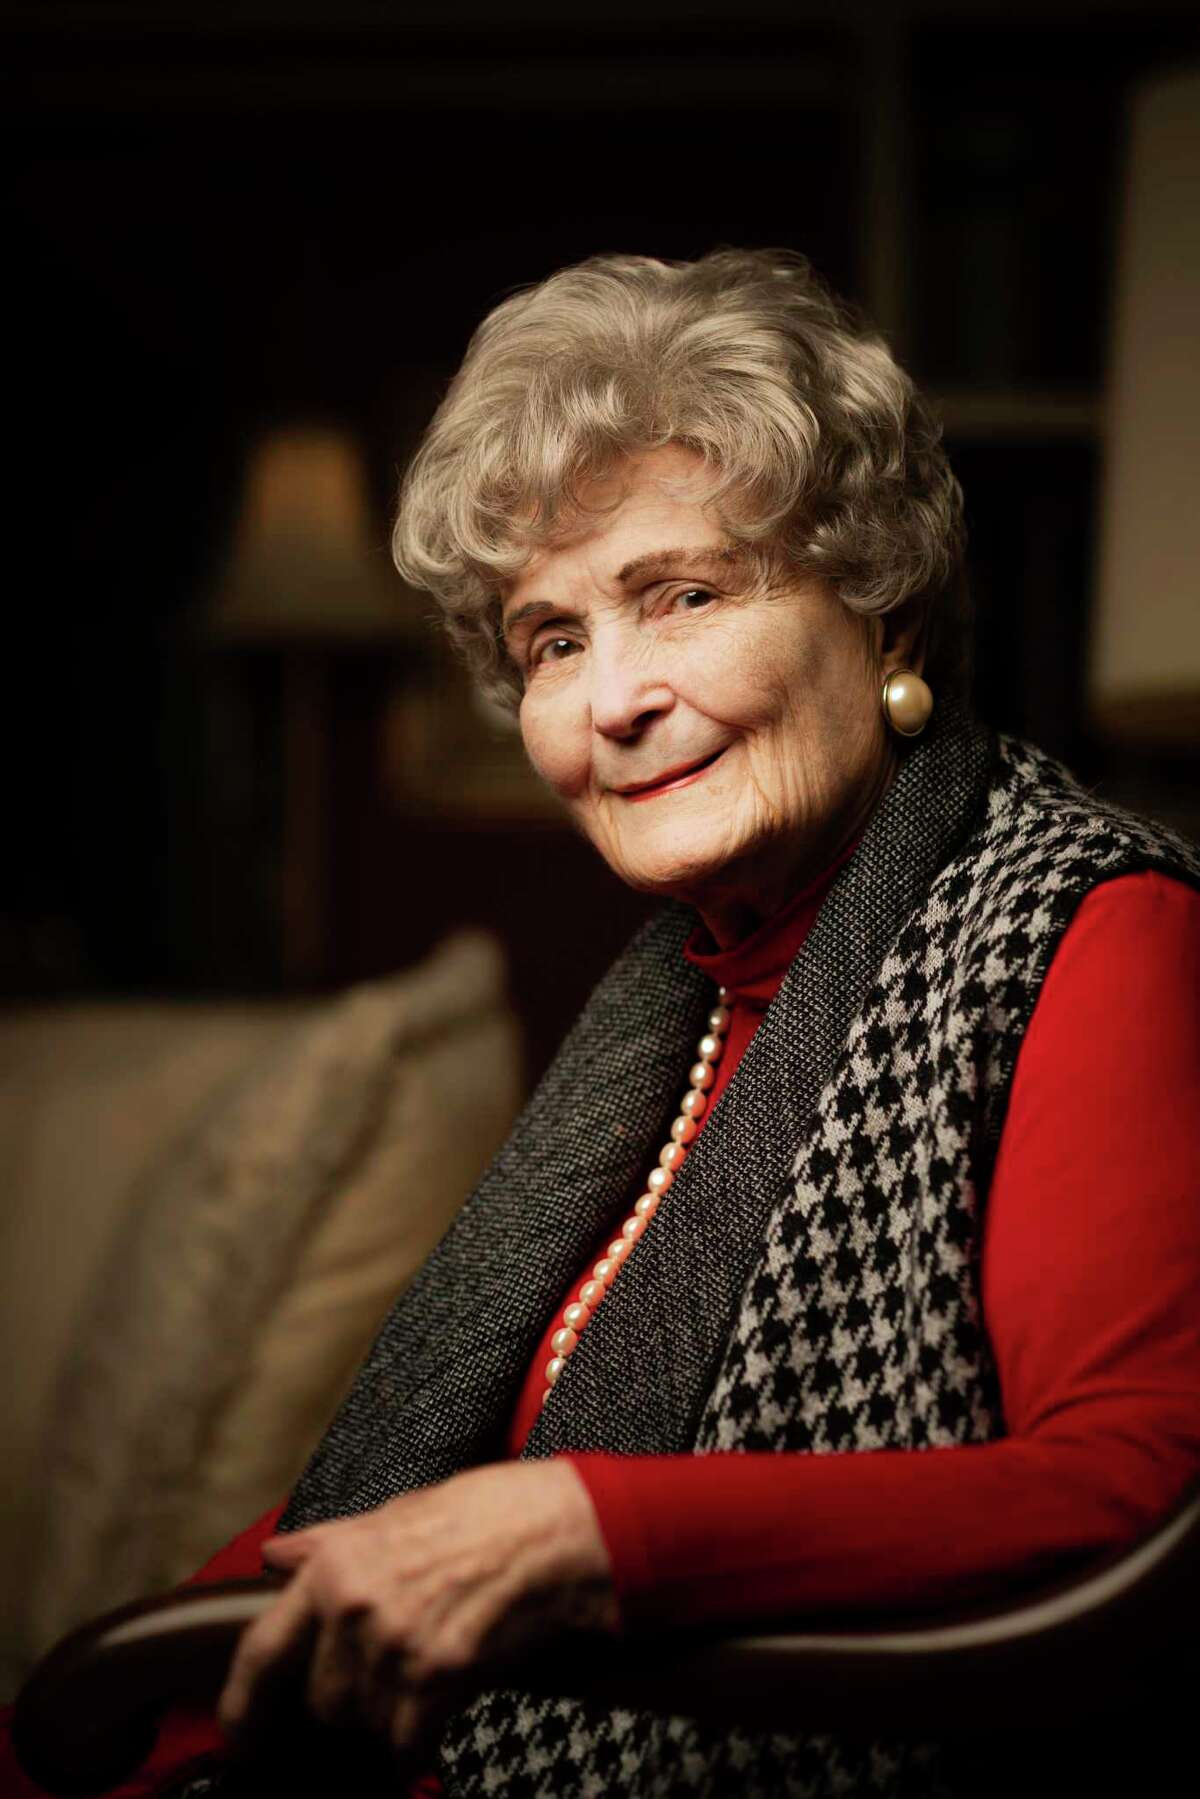 Lila Cockrell, San Antonio's first female mayor and the first of her gender to lead one of America's 10 largest cities. She died on Aug. 29, 2019. She was 97. Read more: Lila Cockrell, first woman mayor of San Antonio, has died